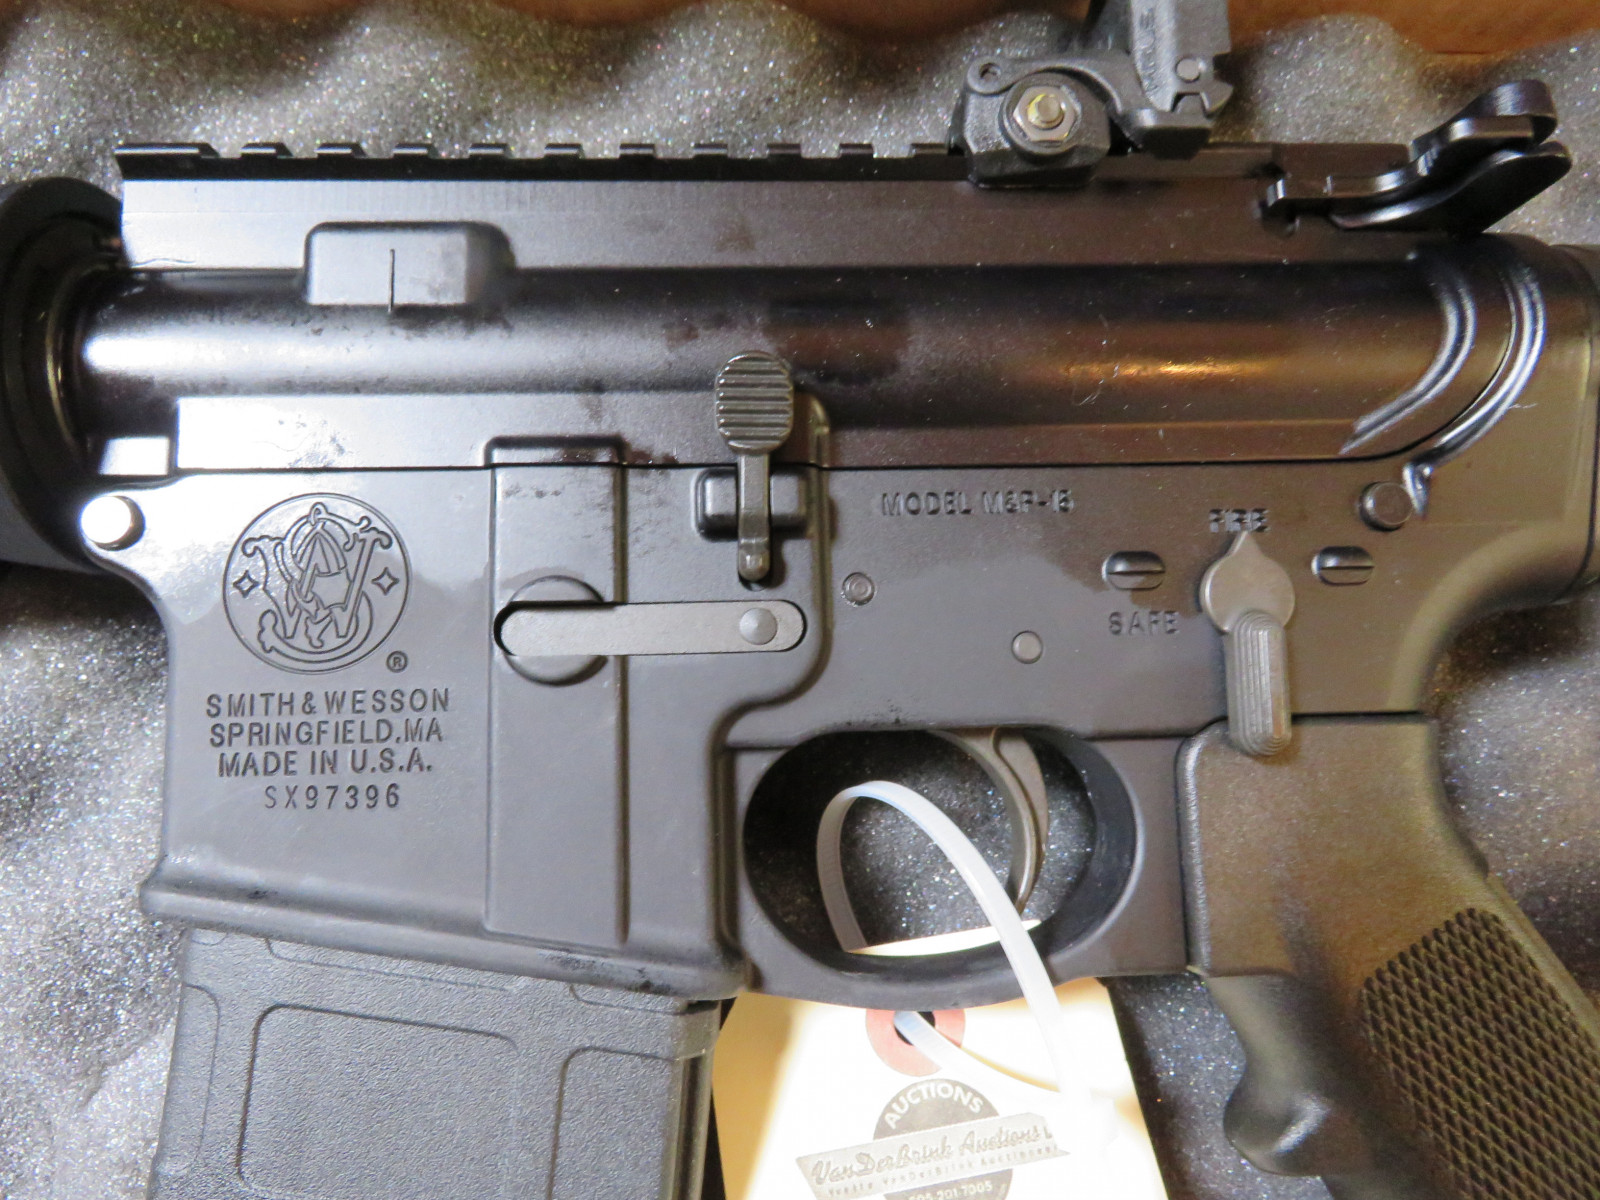 Smith & Wesson M&P15 Centerfire Rifle NIB NF - Image 3